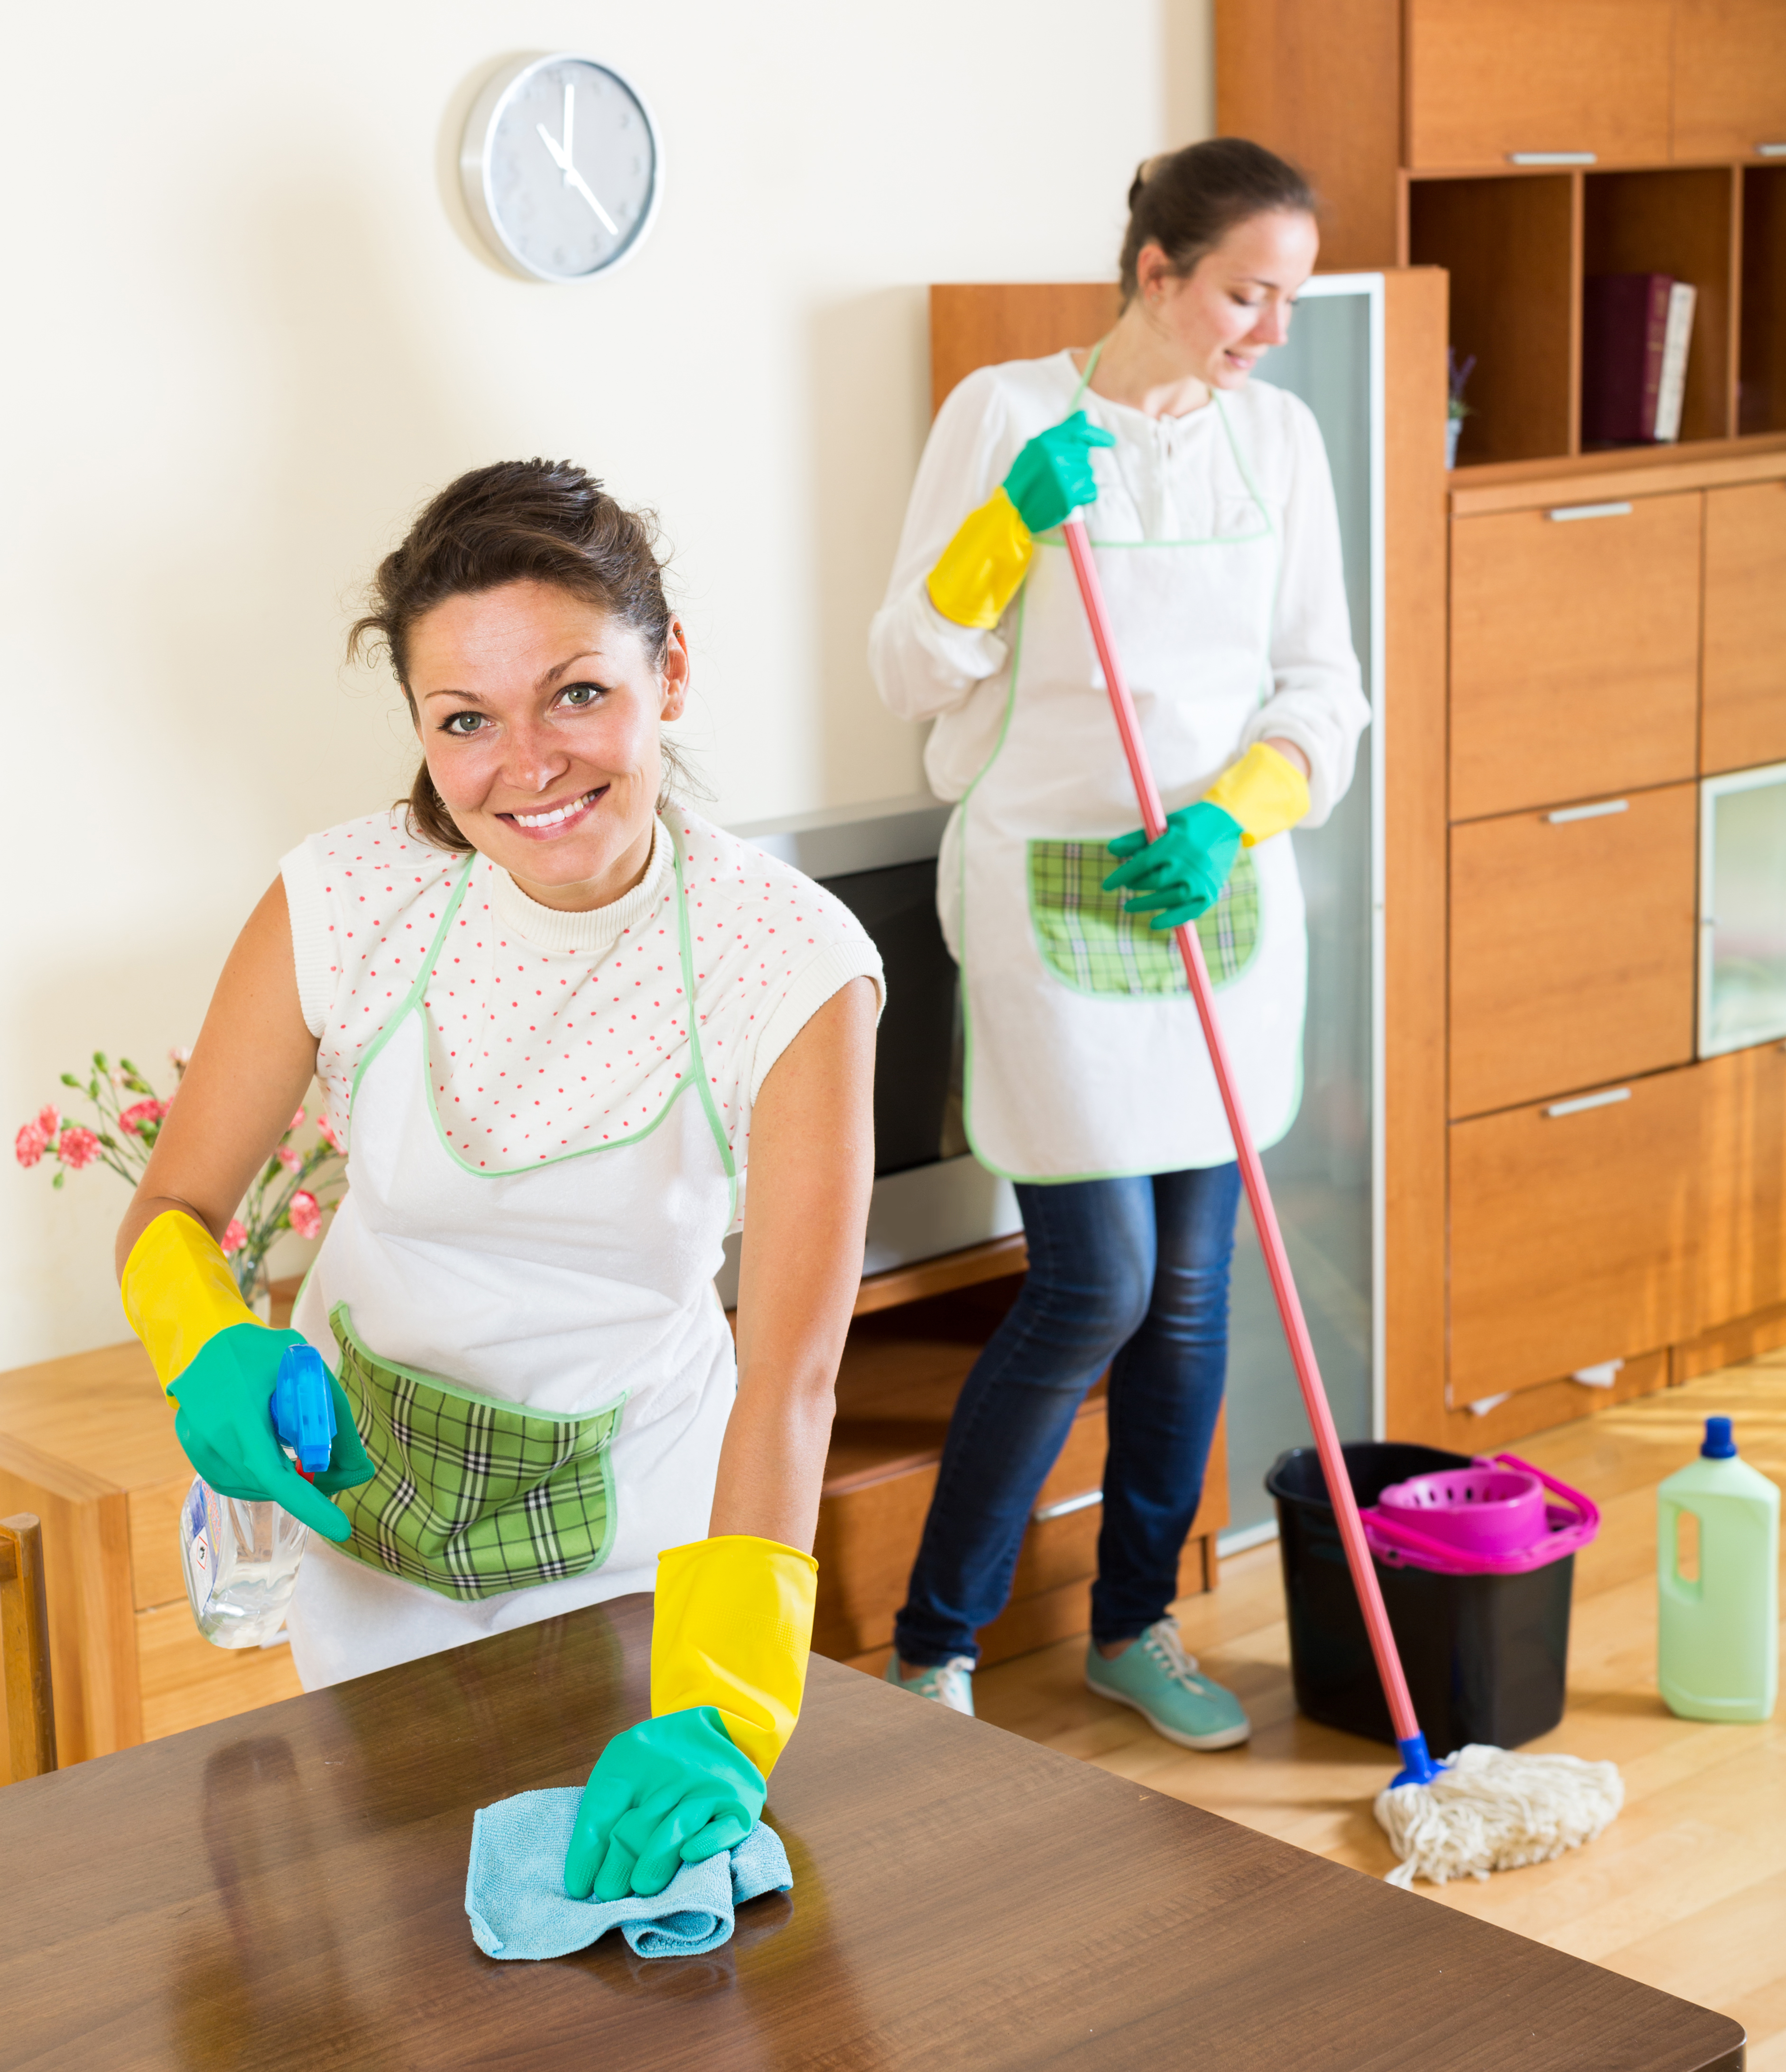 Maid Services   Helpro Cleaning Services